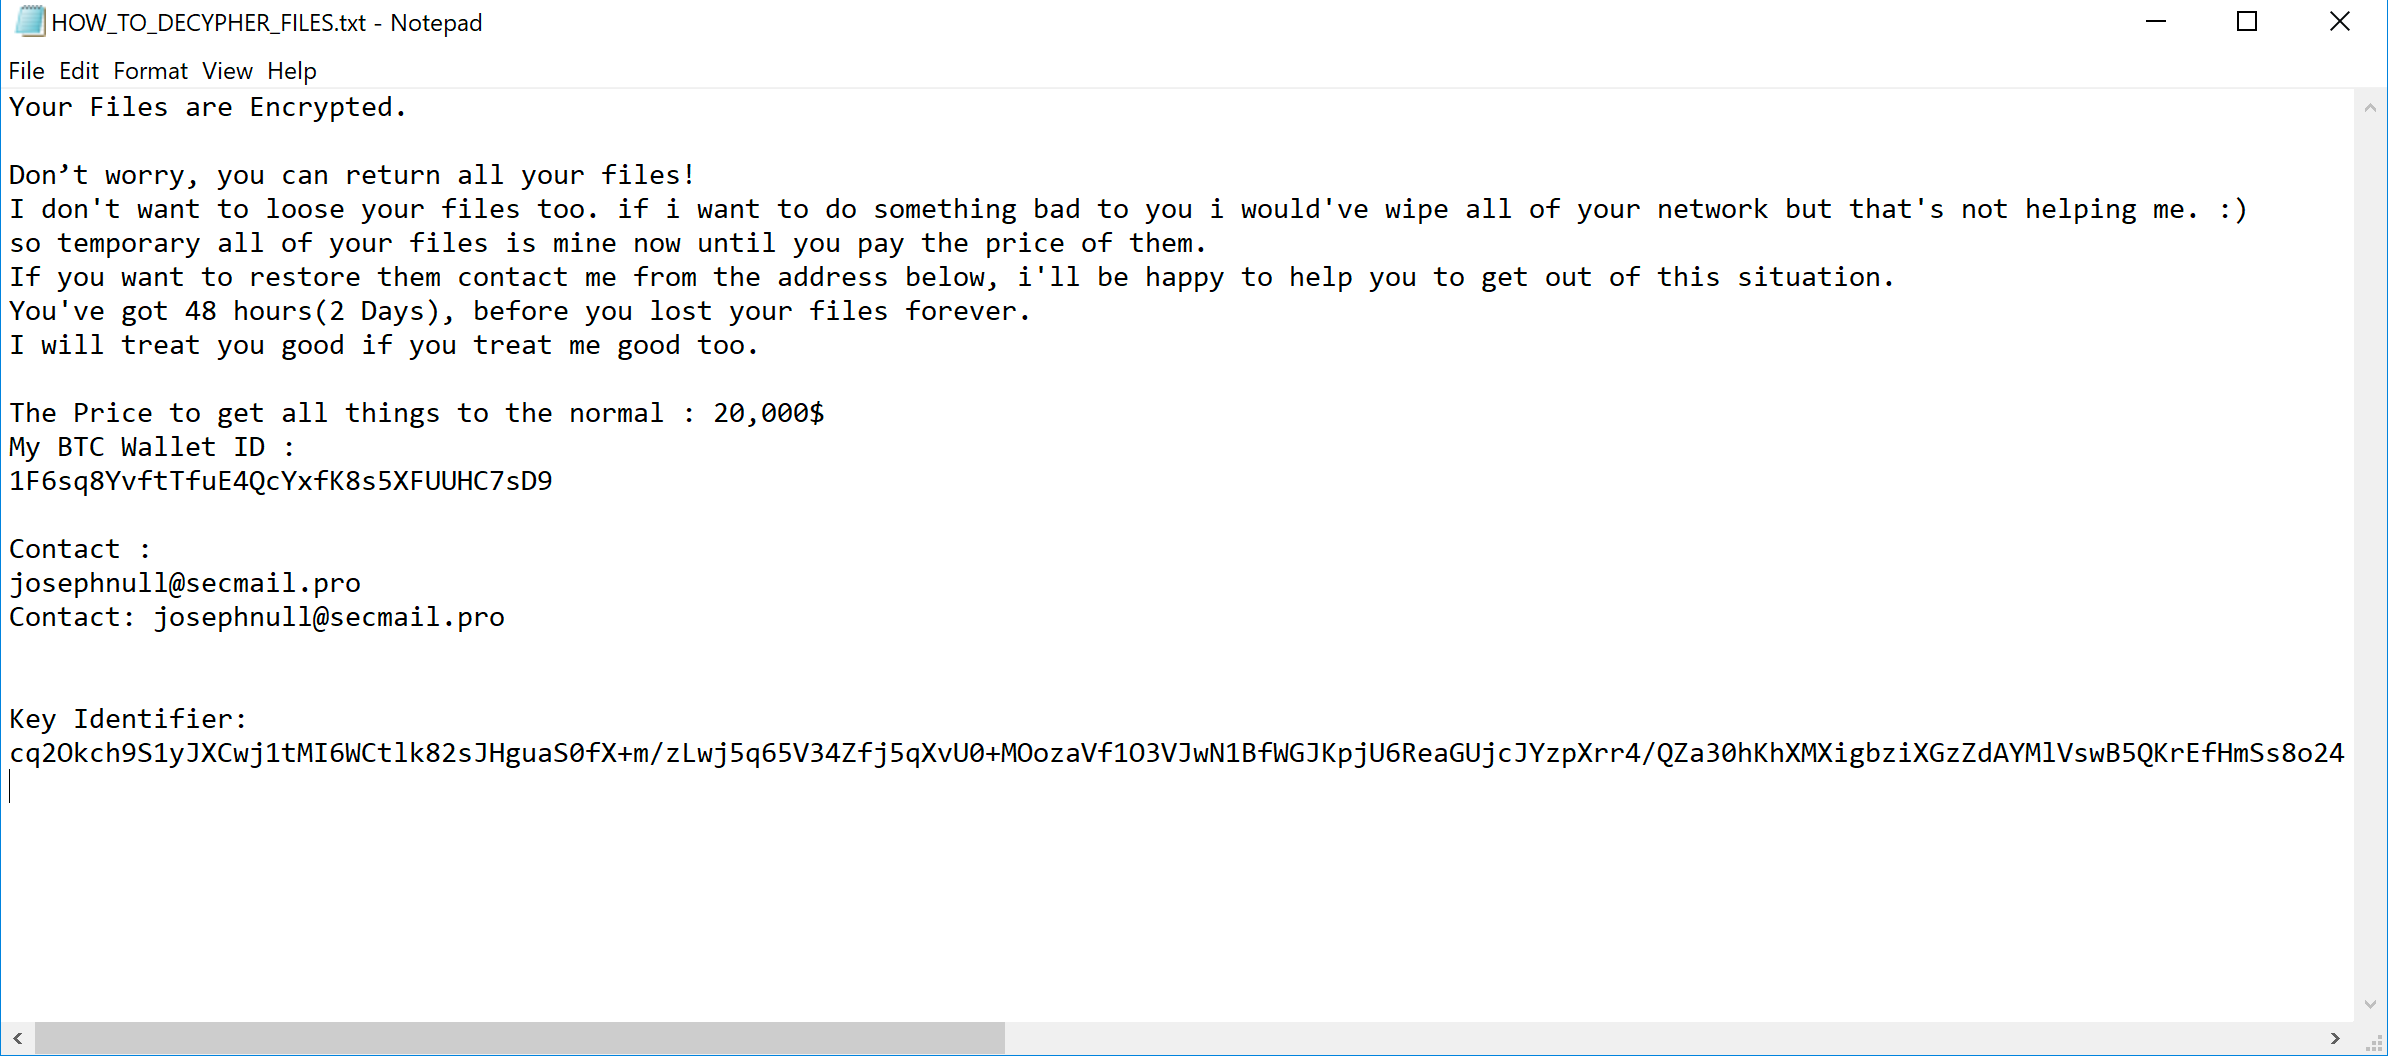 """HOW_TO_DECRYPT_YOUR_FILES.txt - Notepad - This shows a Thanos ransomware message displayed to victims, including the following text: """"Your files are Encrypted. Don't worry, you can return all your files! I don't want to loose your files too. If I want to do something bad to you I would've wipe all of your network but that's not helping me. :) so temporary all of your files is mine now until you pay the price of them. If you want to restore them contact me from the address below, I'll be happy to help you to get out of this situation. You've got 48 hours (2 Days), before you lost your files forever. I will treat you good if you treat me good too."""" The note closes with contact info, a Bitcoin wallet ID and a demand for """"20,000$."""""""